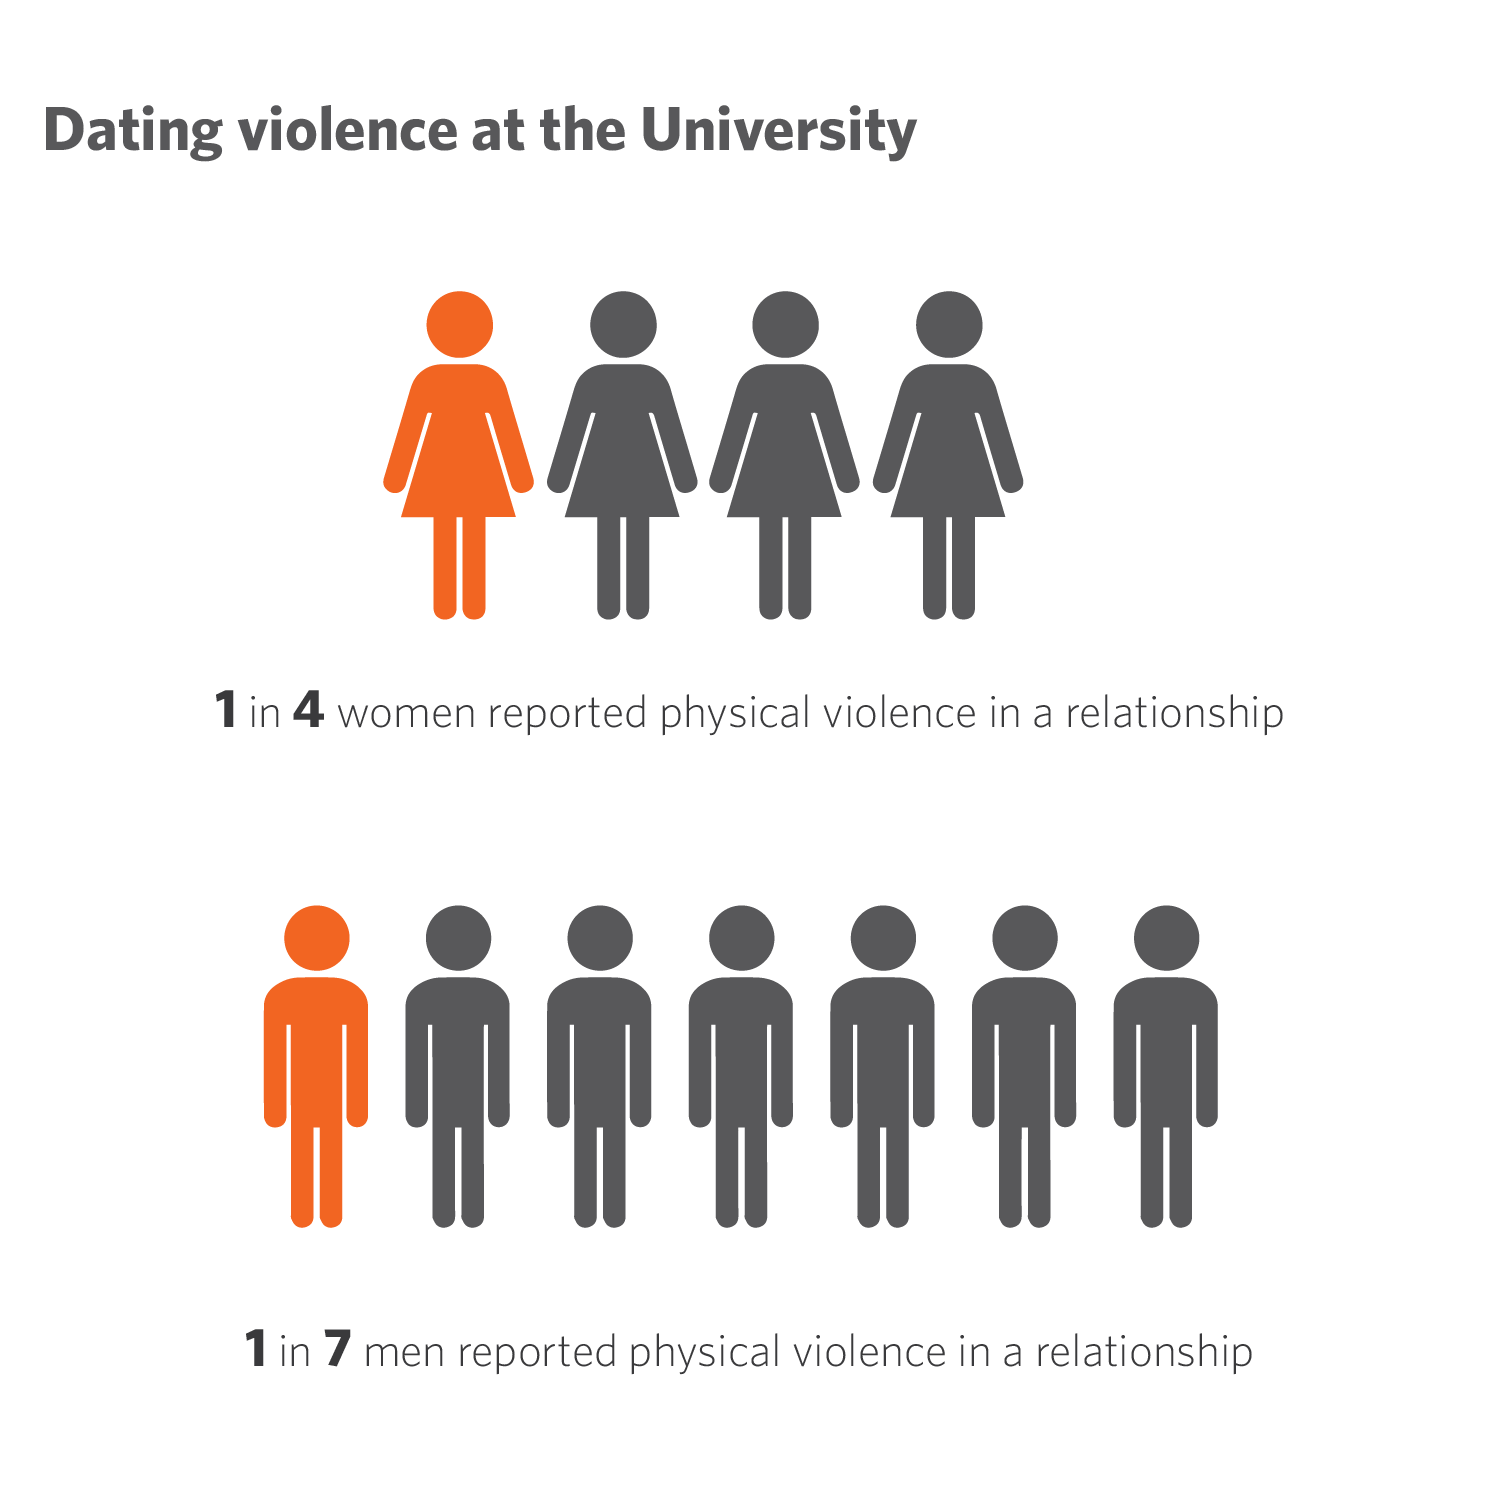 Source: University of Illinois Sexual Misconduct and Perceived Campus Response Survey